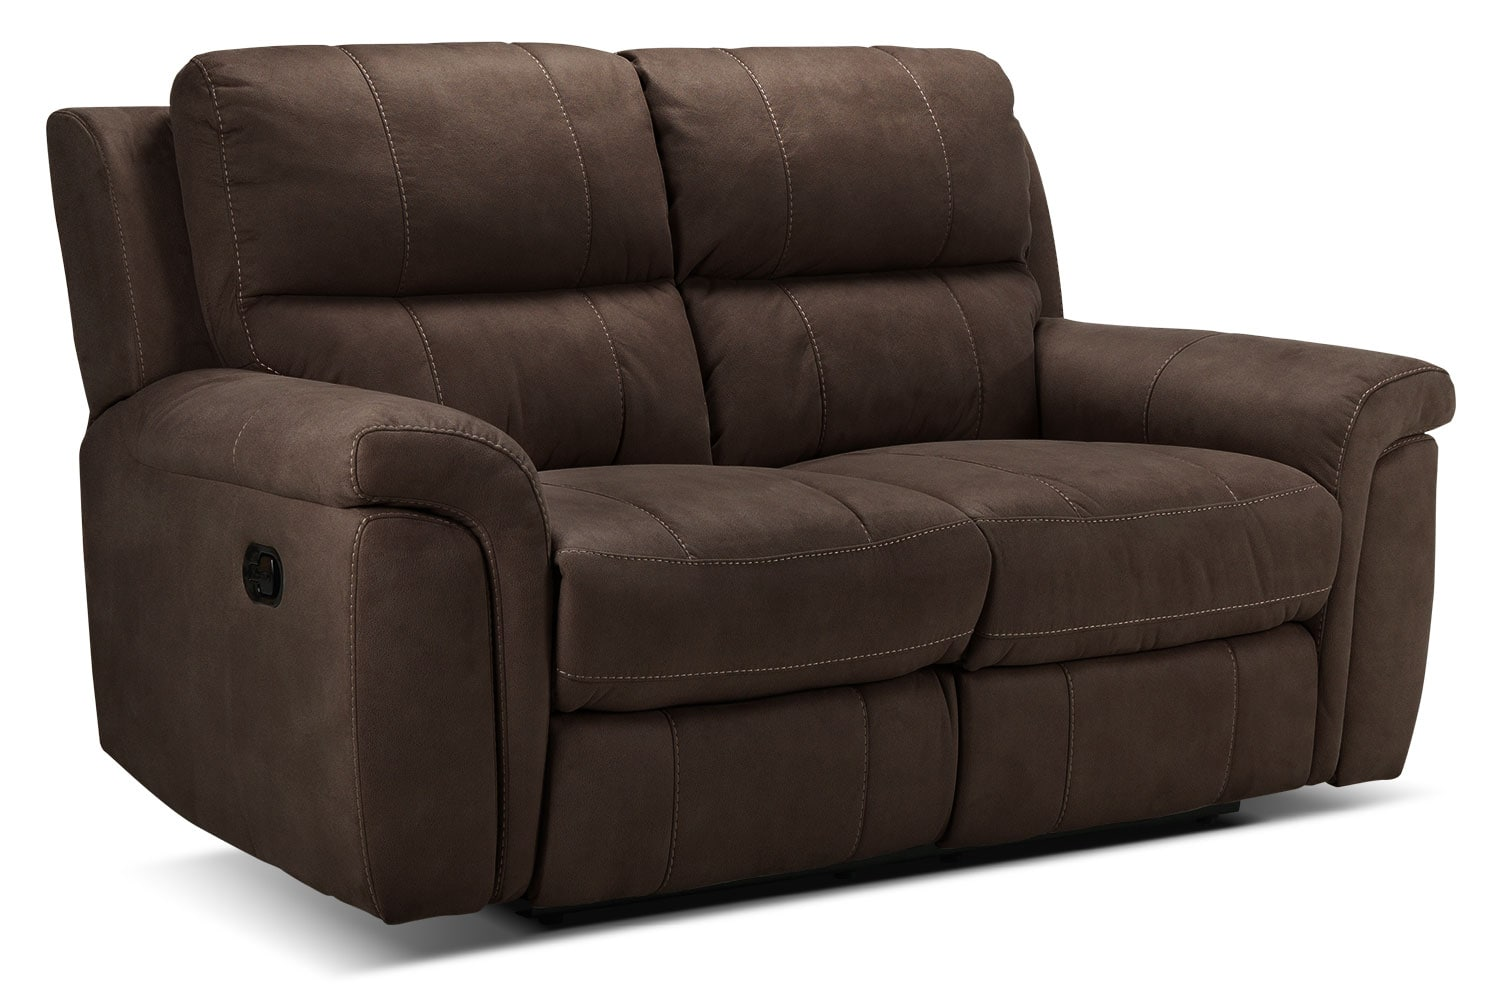 Living Room Furniture - Roarke Reclining Loveseat - Walnut